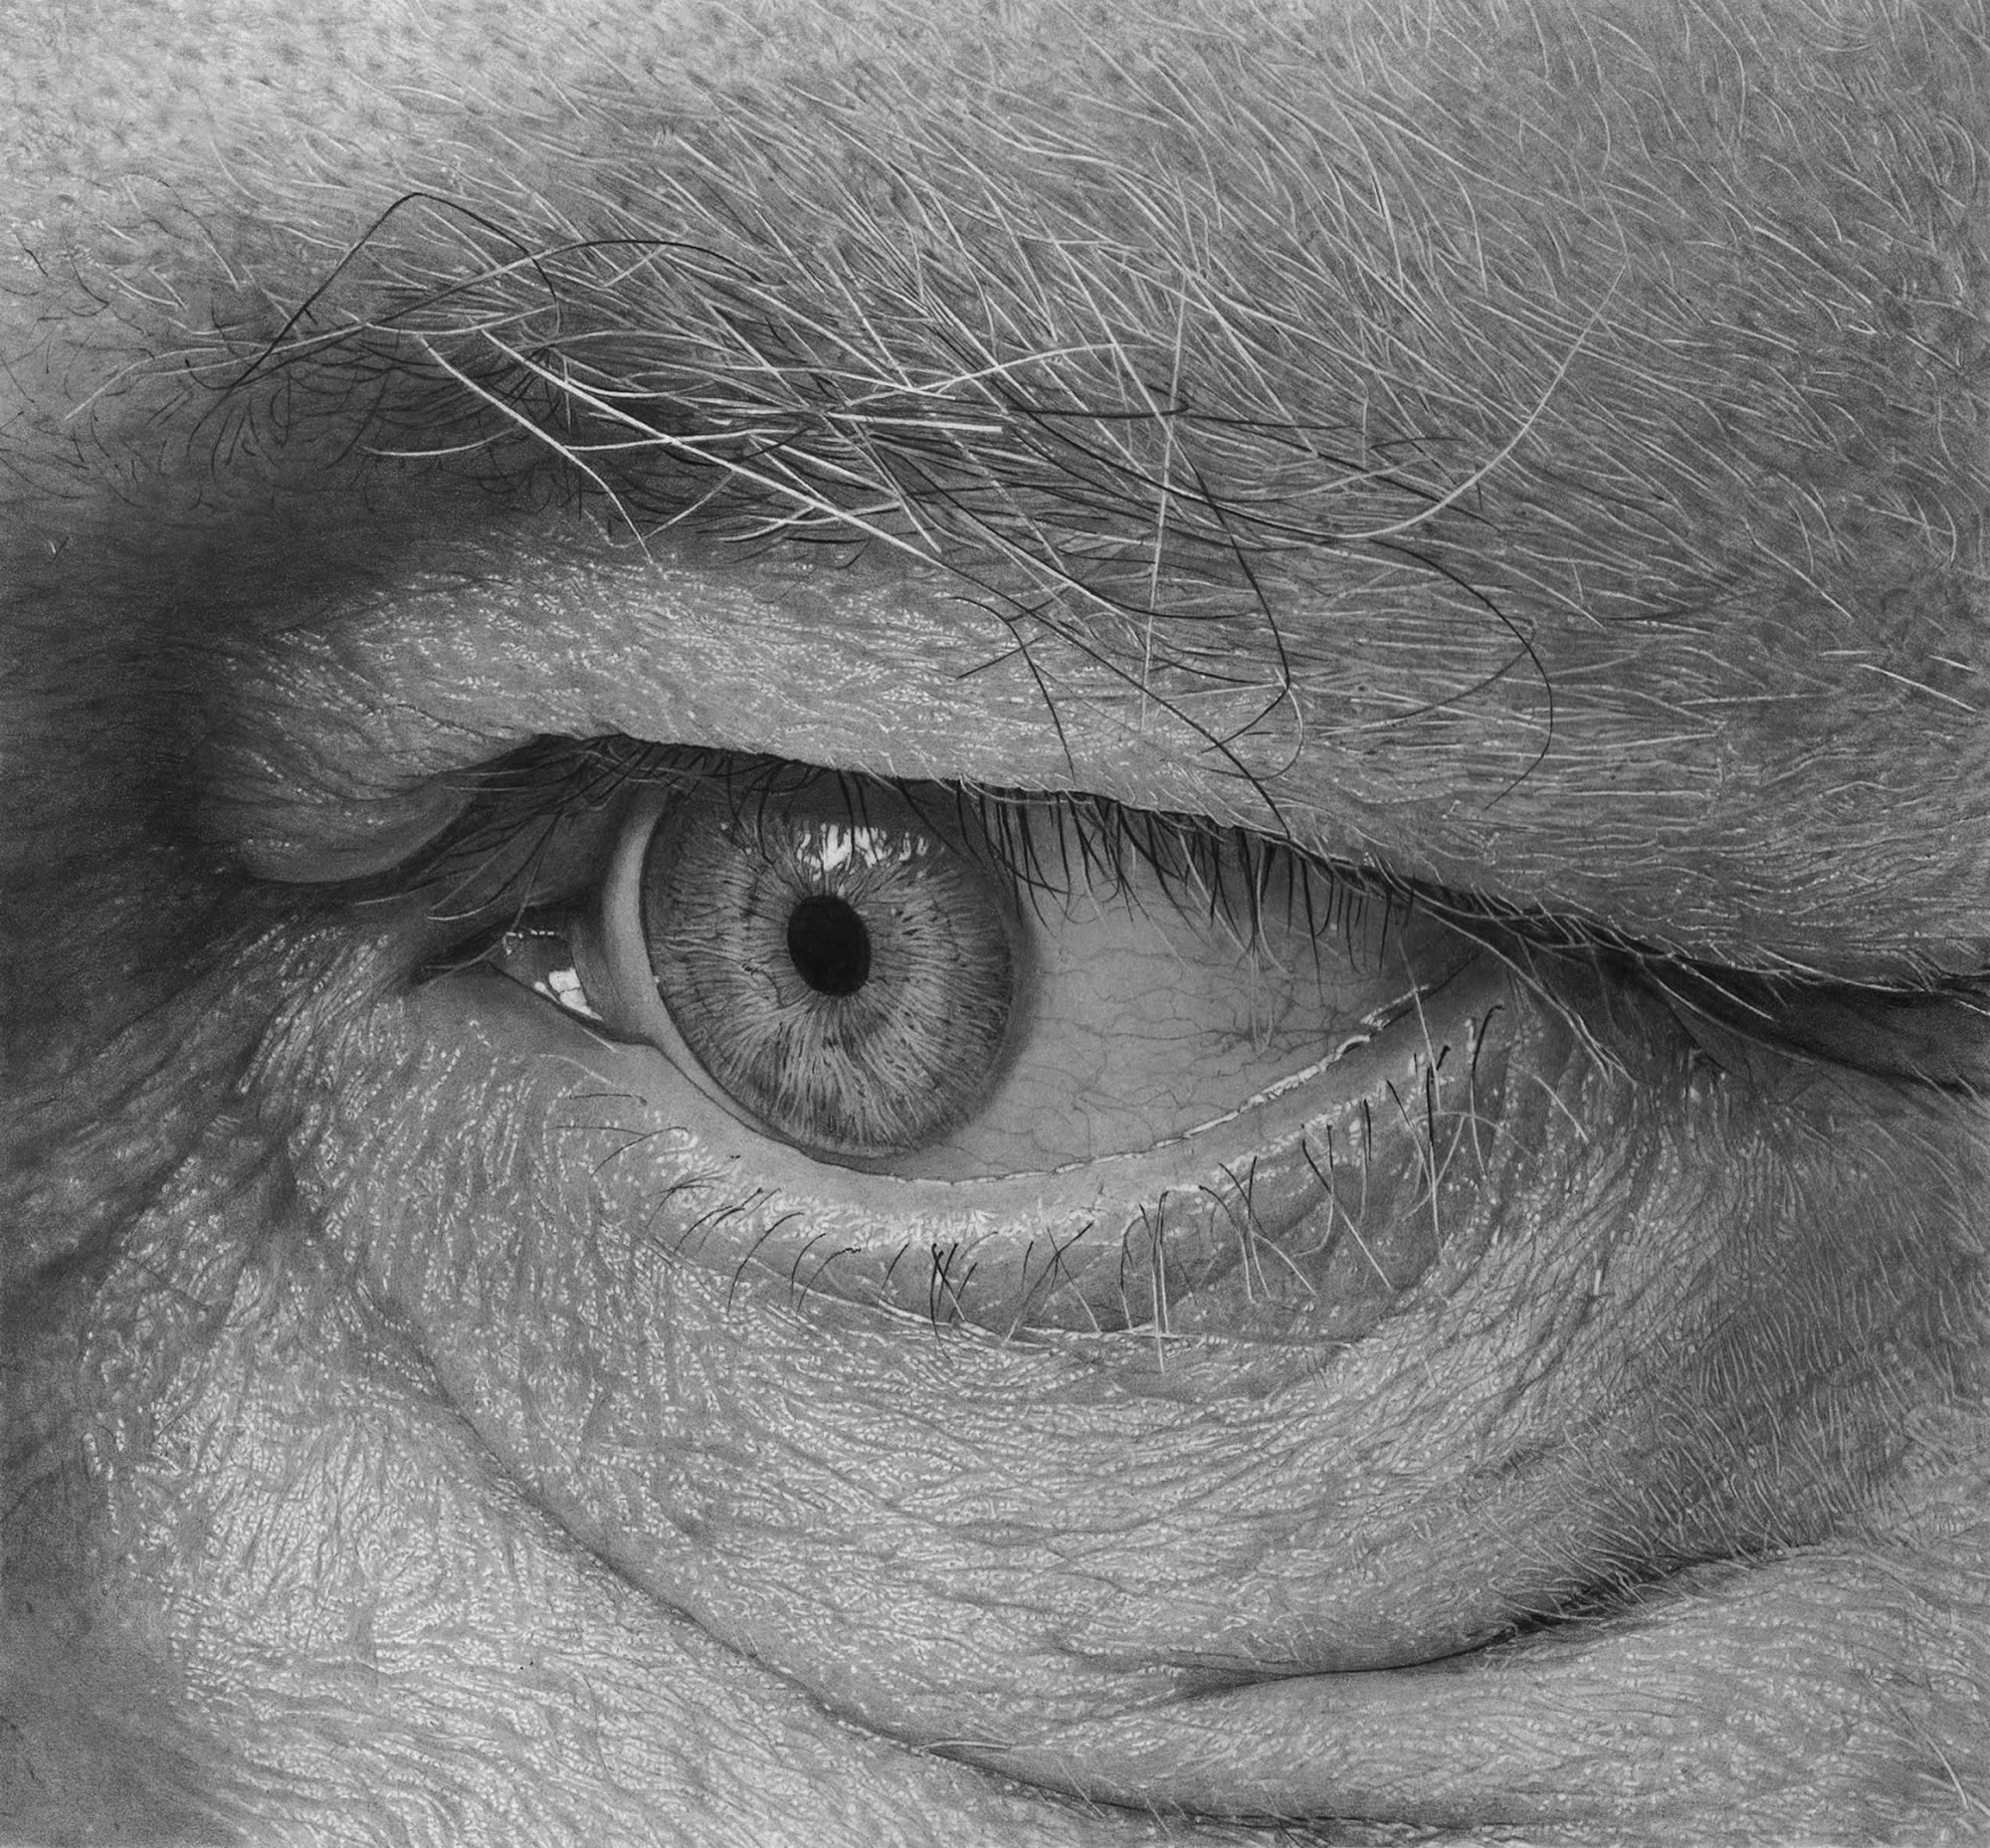 Eyes Wide Open: The Detailed Pencil Drawings of Flavio Apel